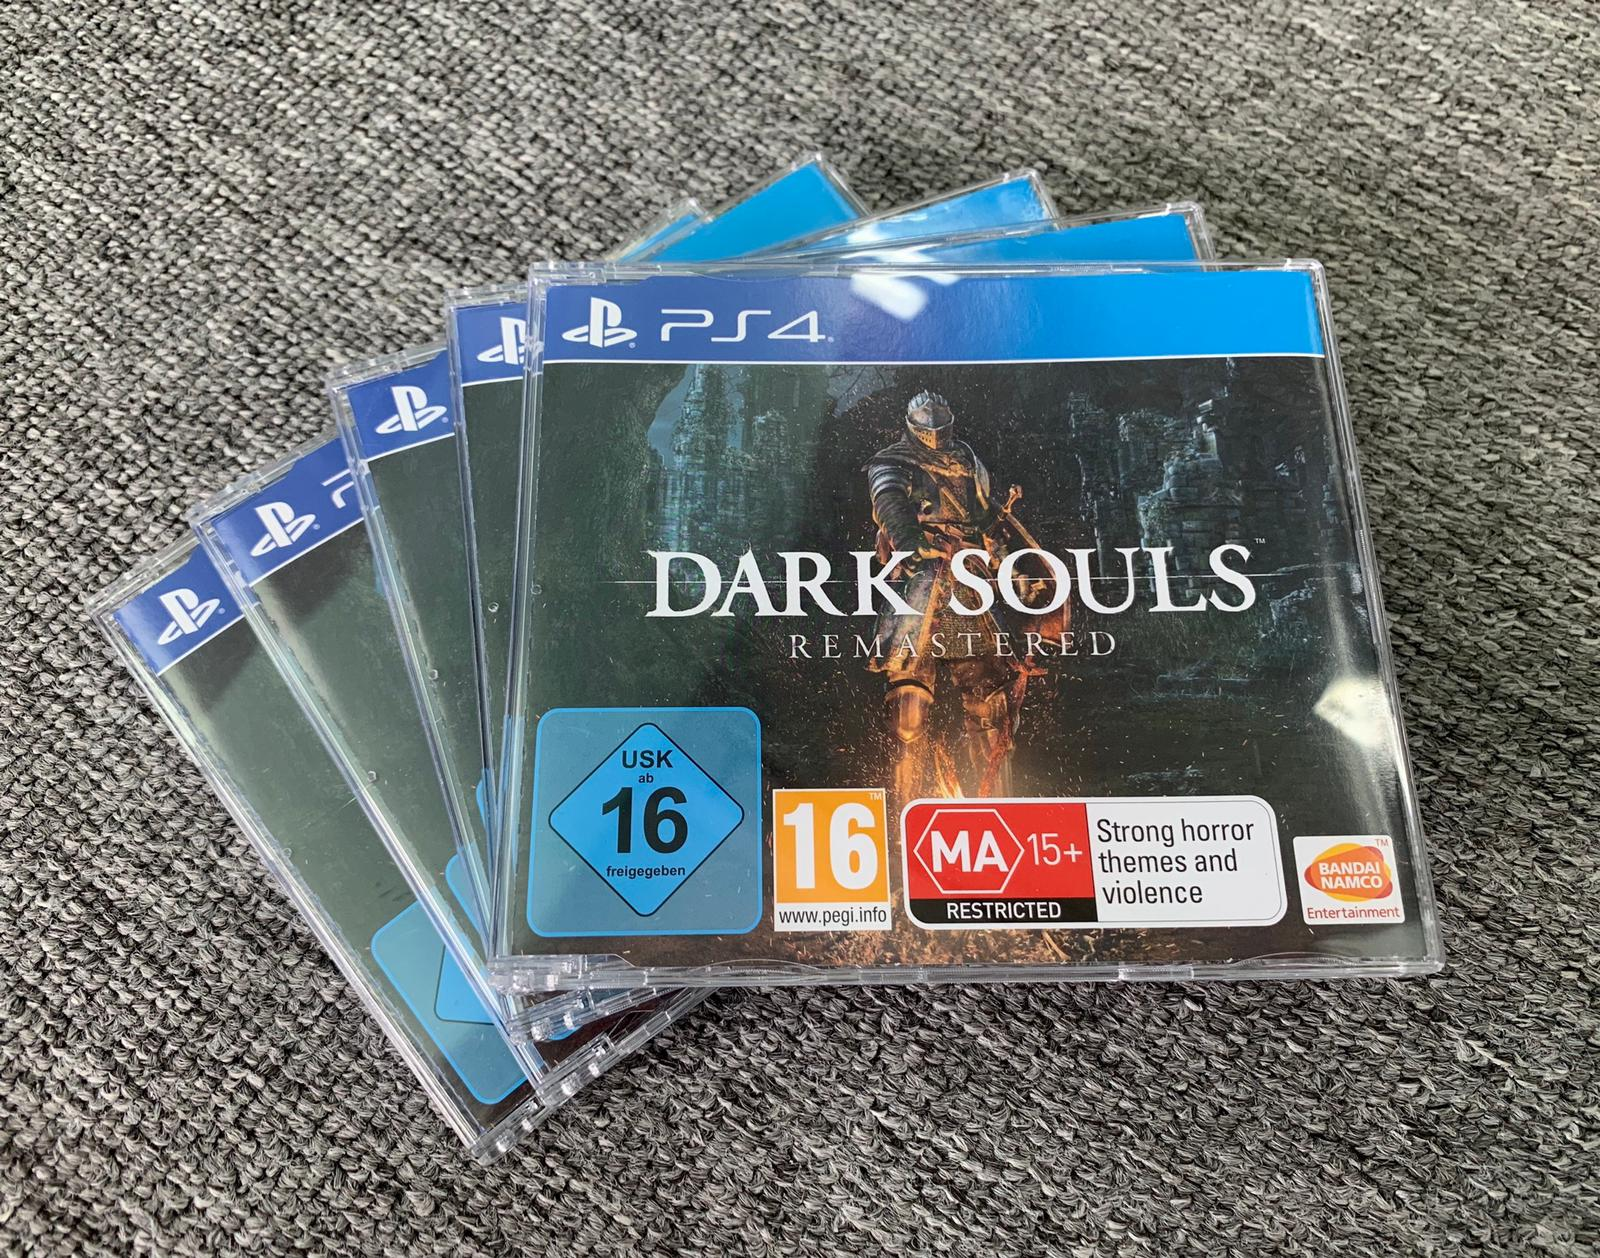 Dark Souls: Remastered giveaways